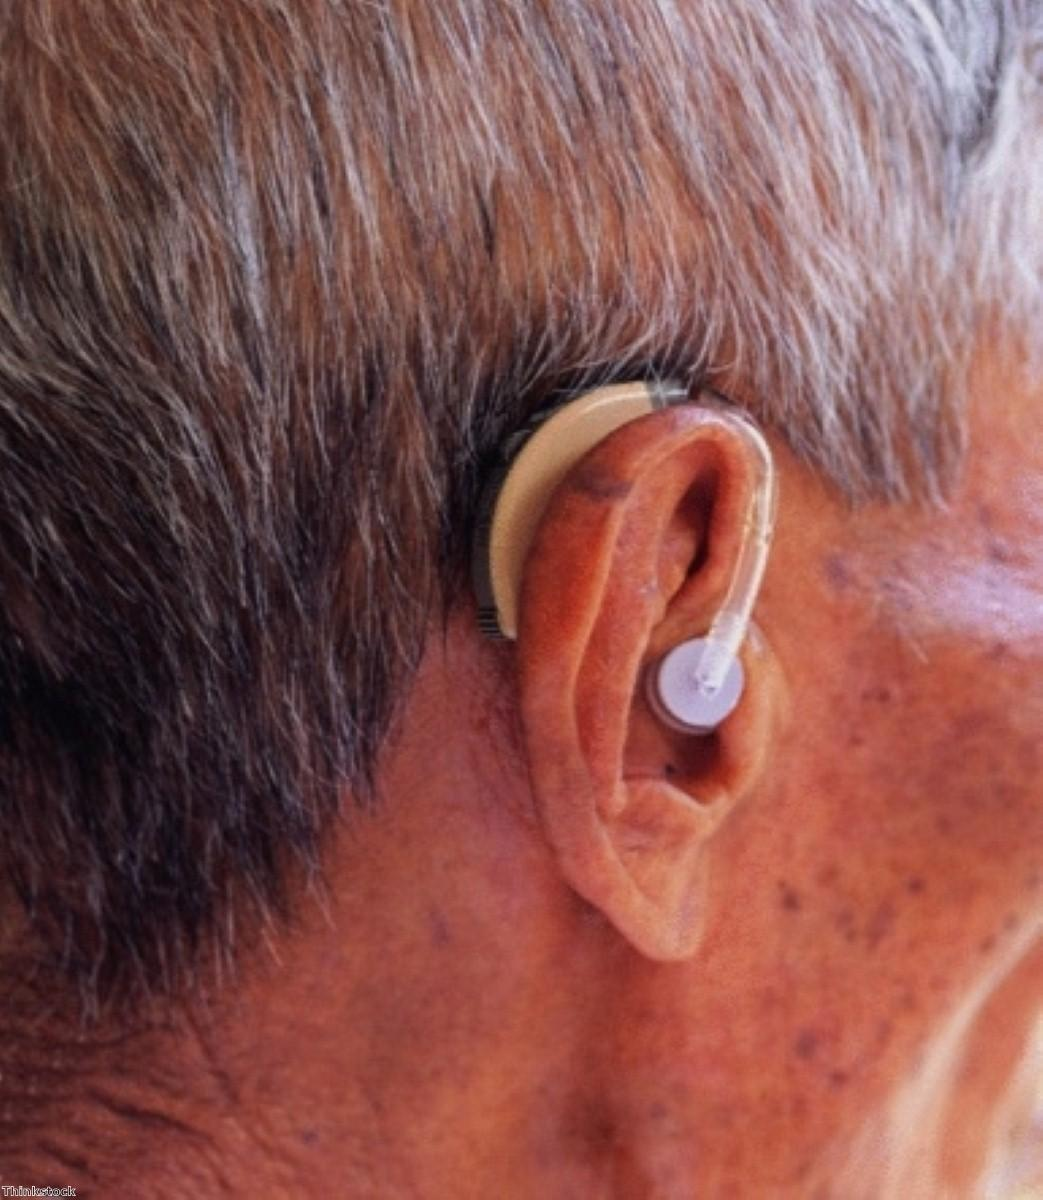 Deafness 'could contribute to dementia'